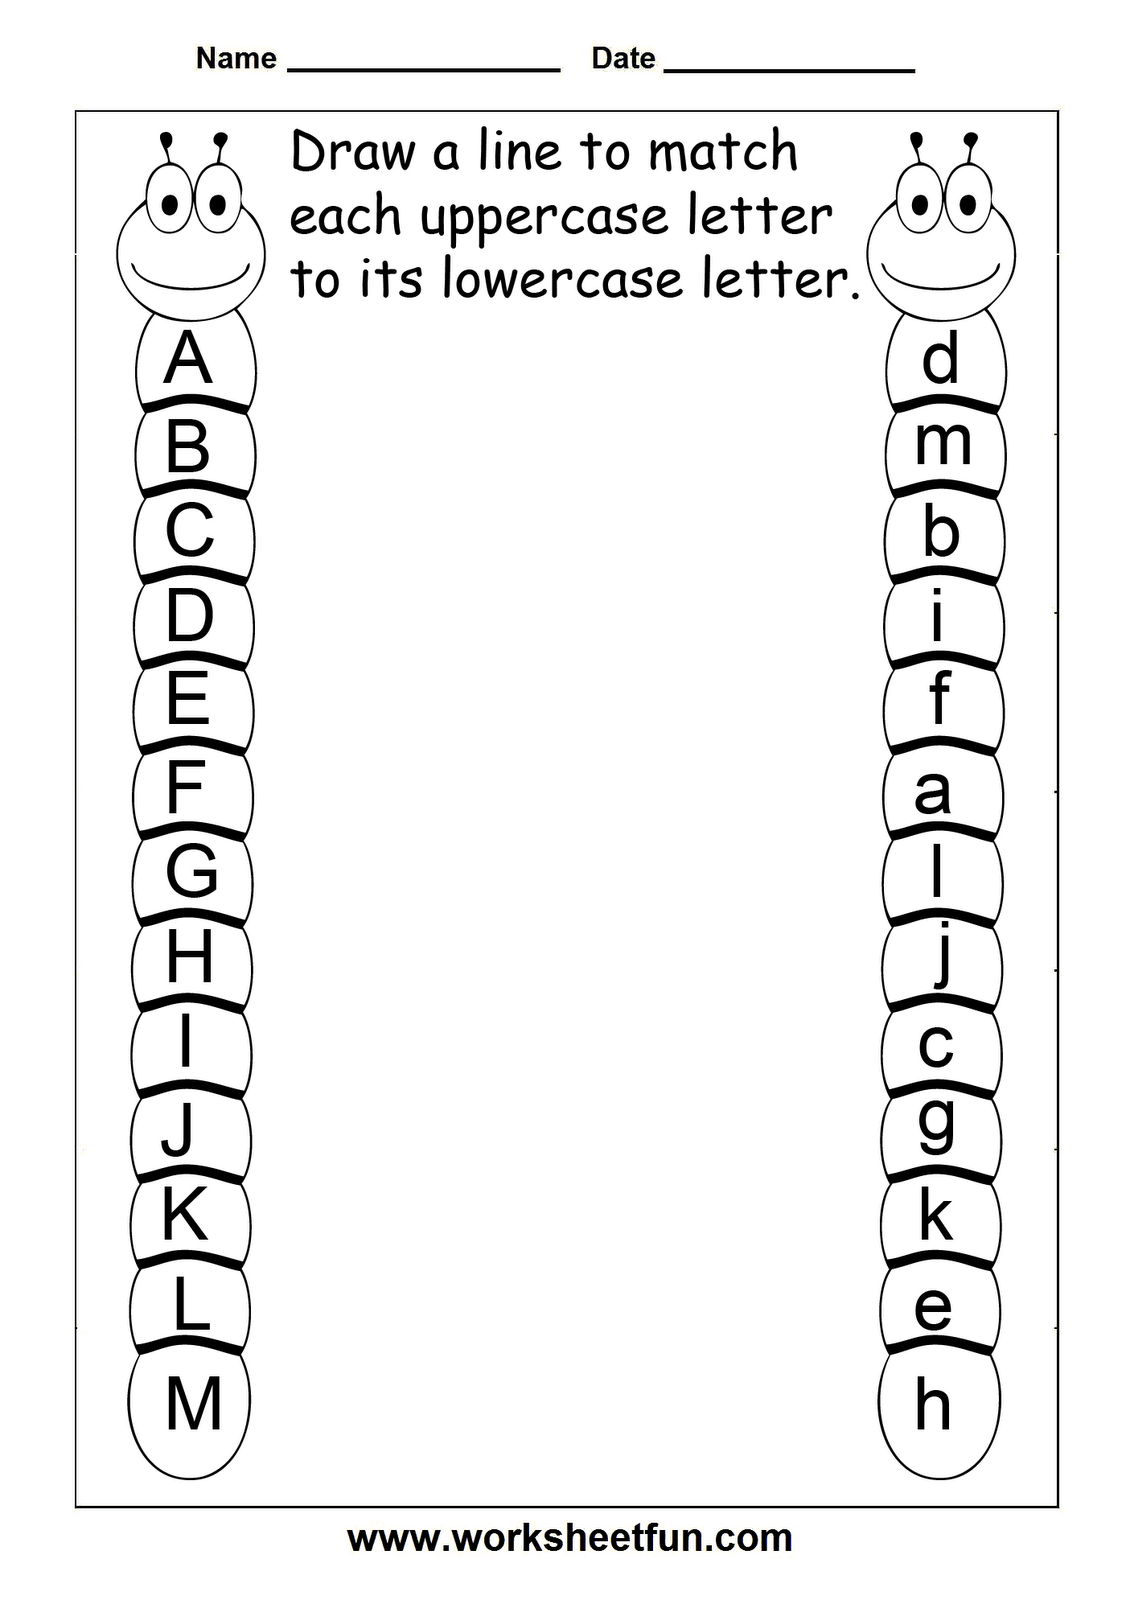 Kids Worksheets on Pinterest | Kids Learning Games, Letter Worksheets ...